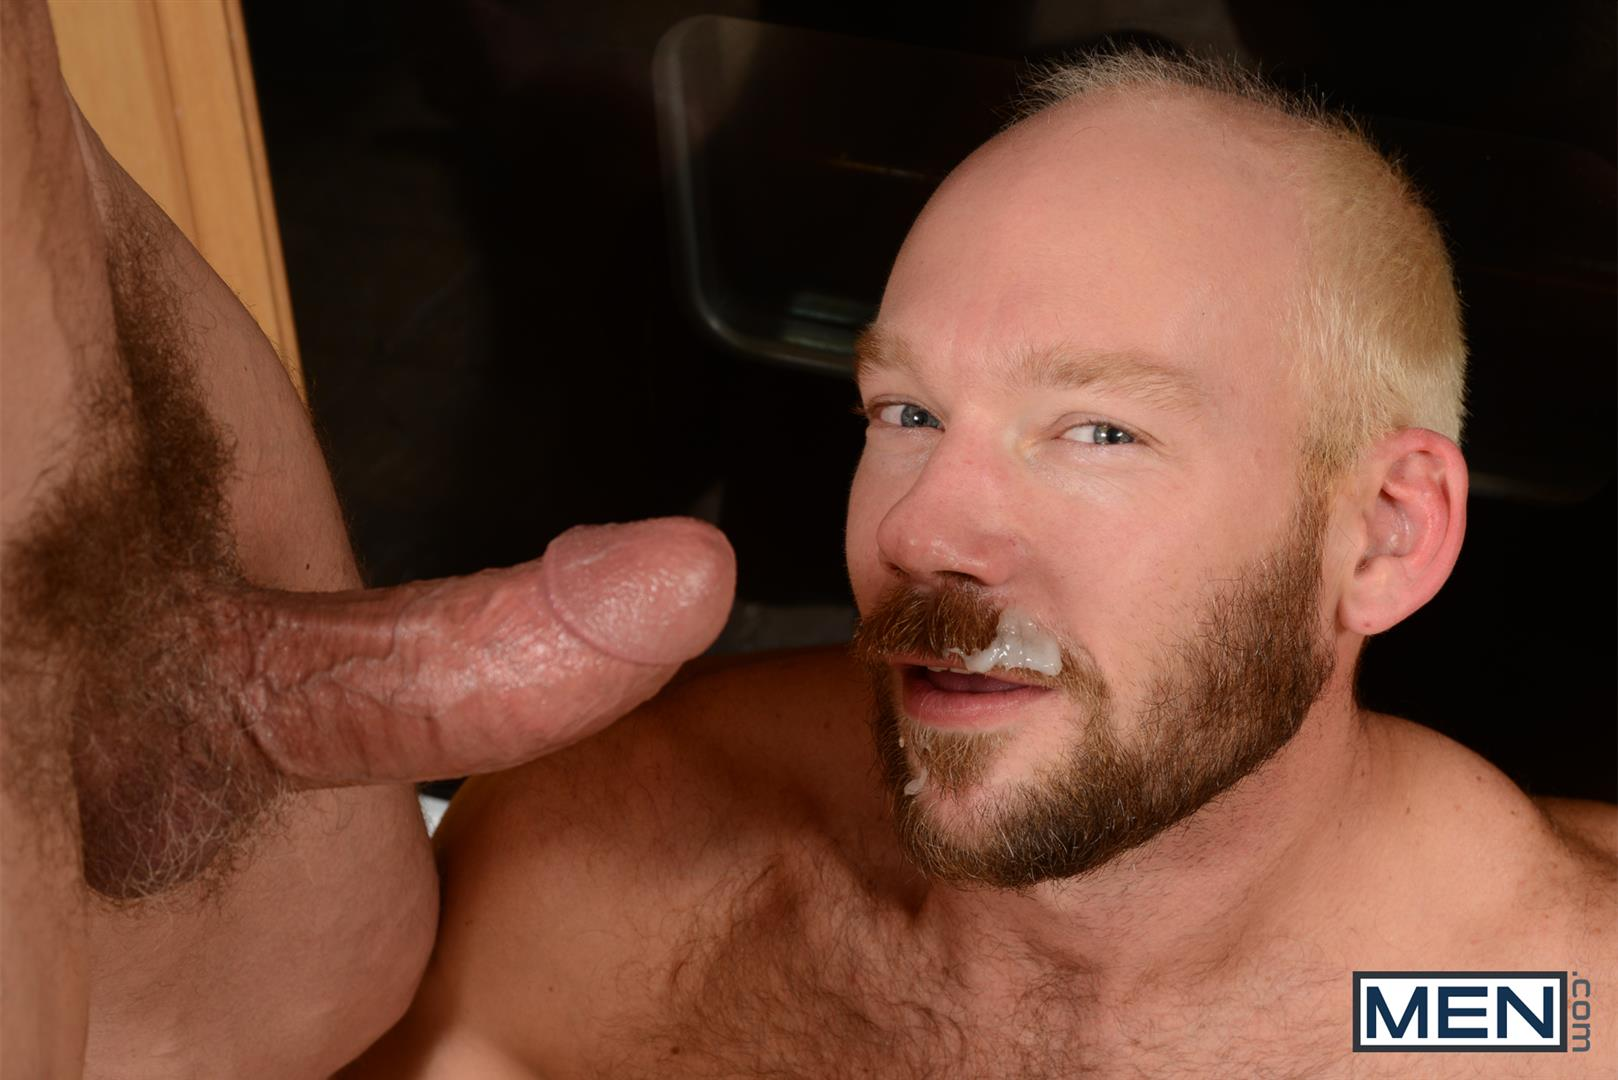 Men Drill My Hole Max Sargent and Mike Tanner Thick Cock Daddys Fucking Amateur Gay Porn 13 Hairy Muscle Daddys Fucking In The Kitchen And Eating Cum